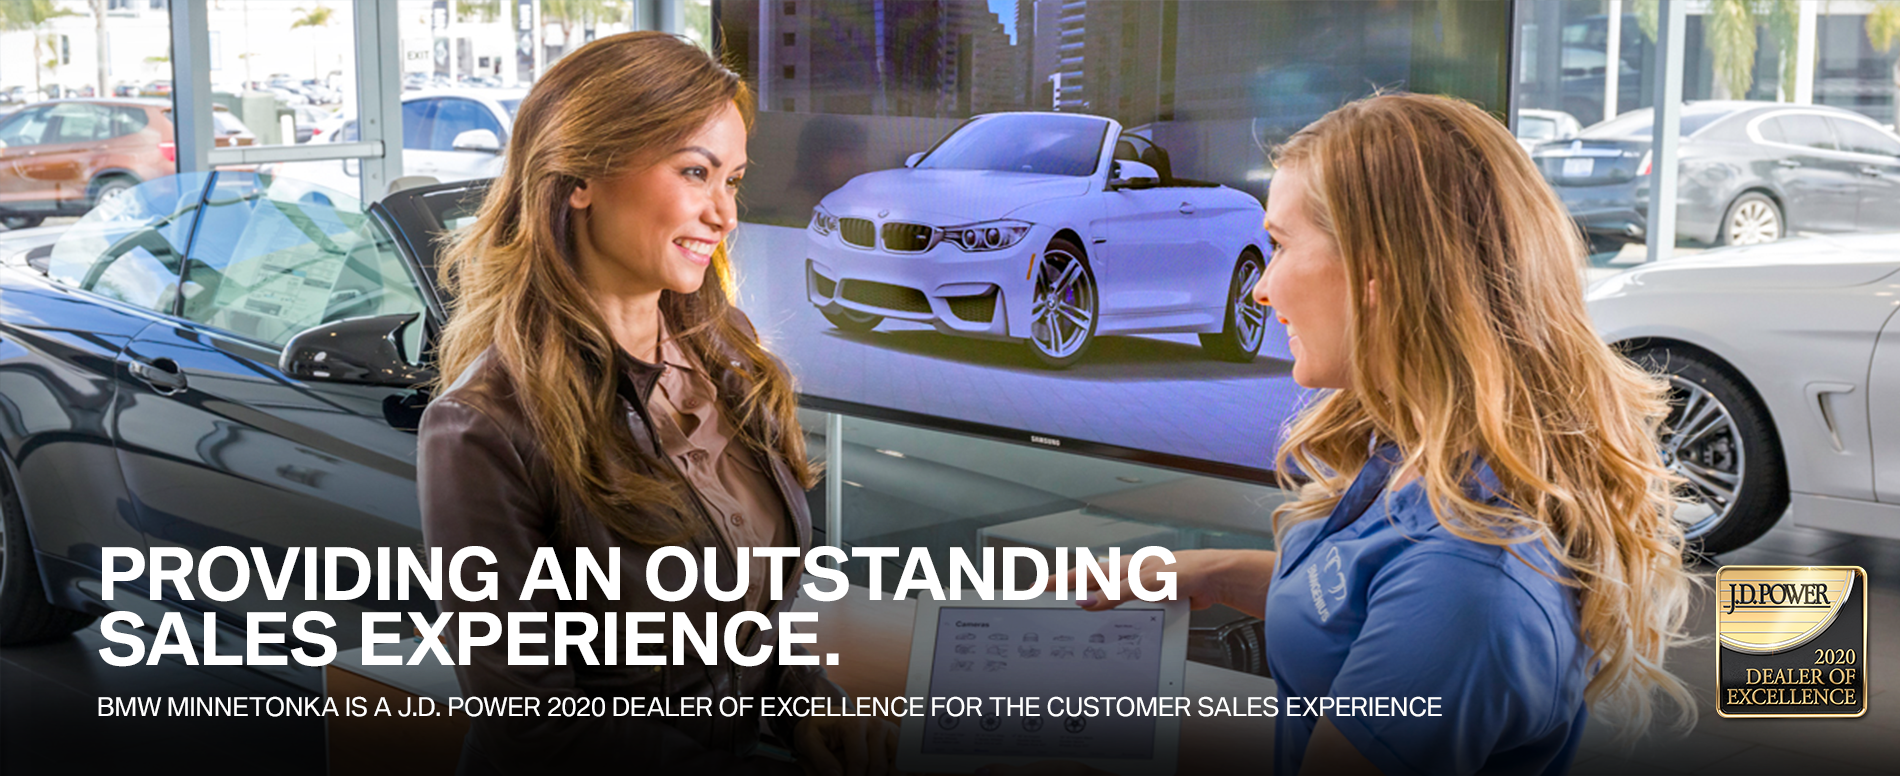 BMW of Minnetonka is a J.D. Power 2020 Dealer of Excellence for the Customer Sales Experience